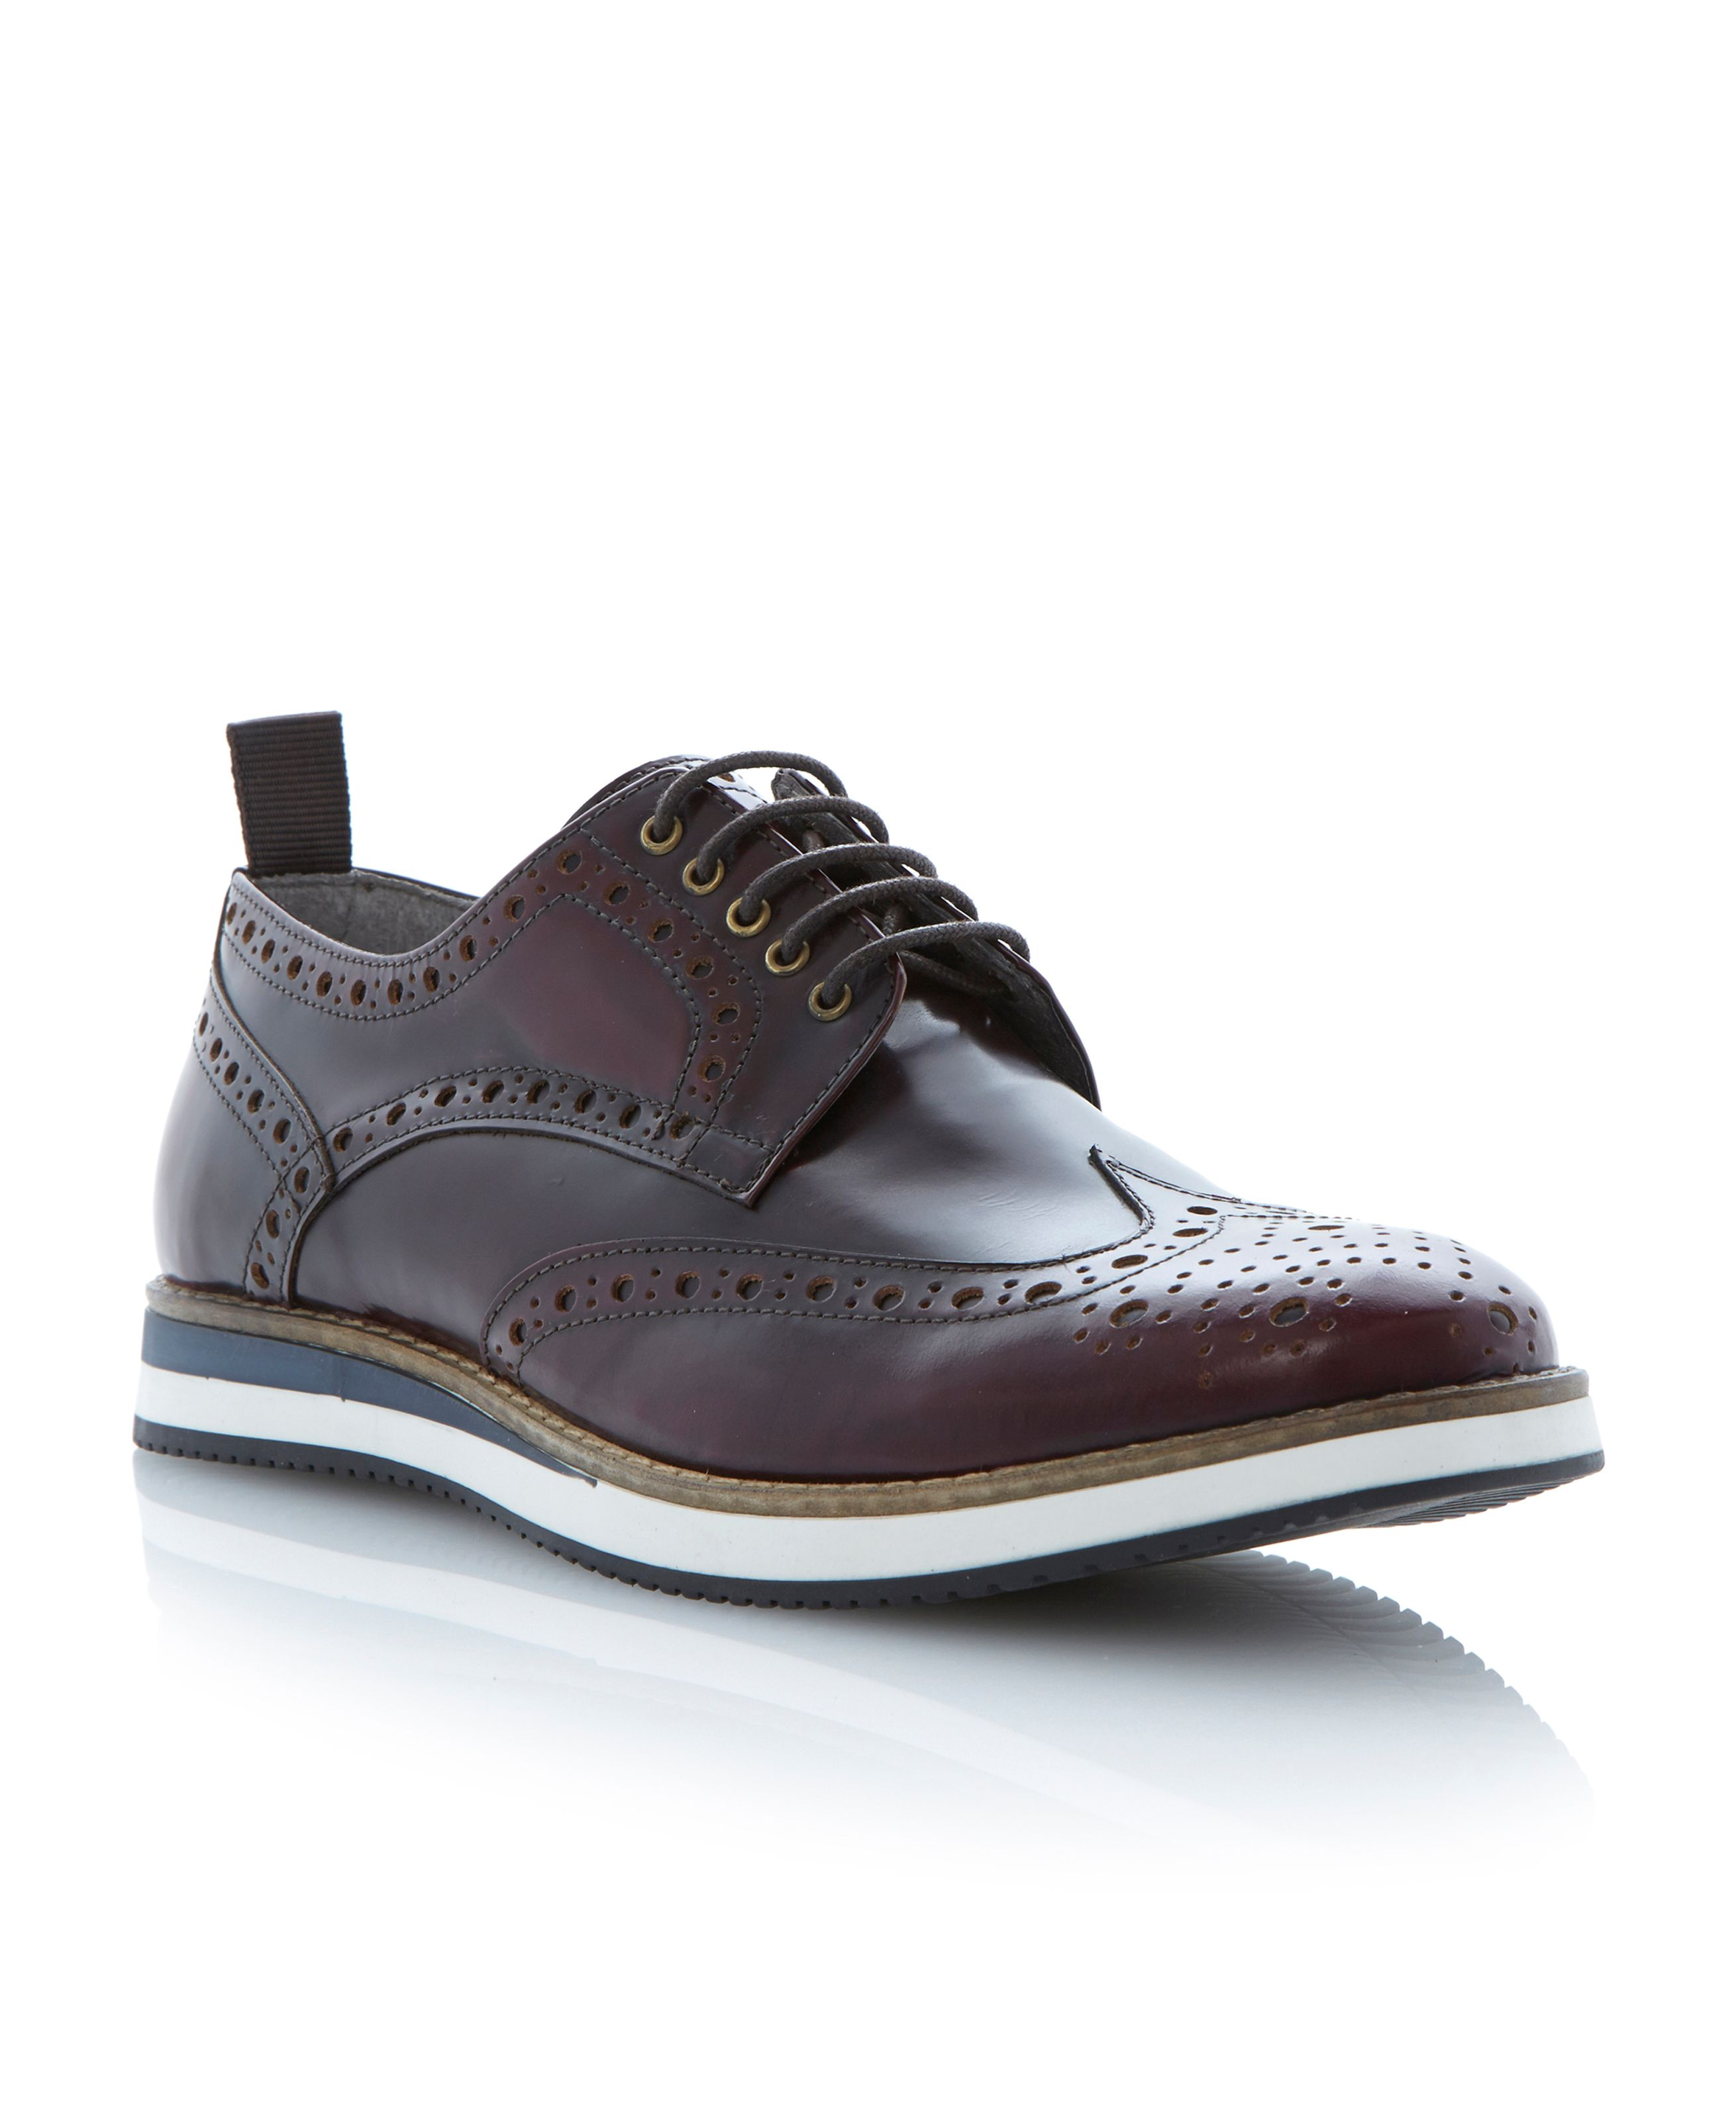 Brotherhood polido brogue on sporty shoe